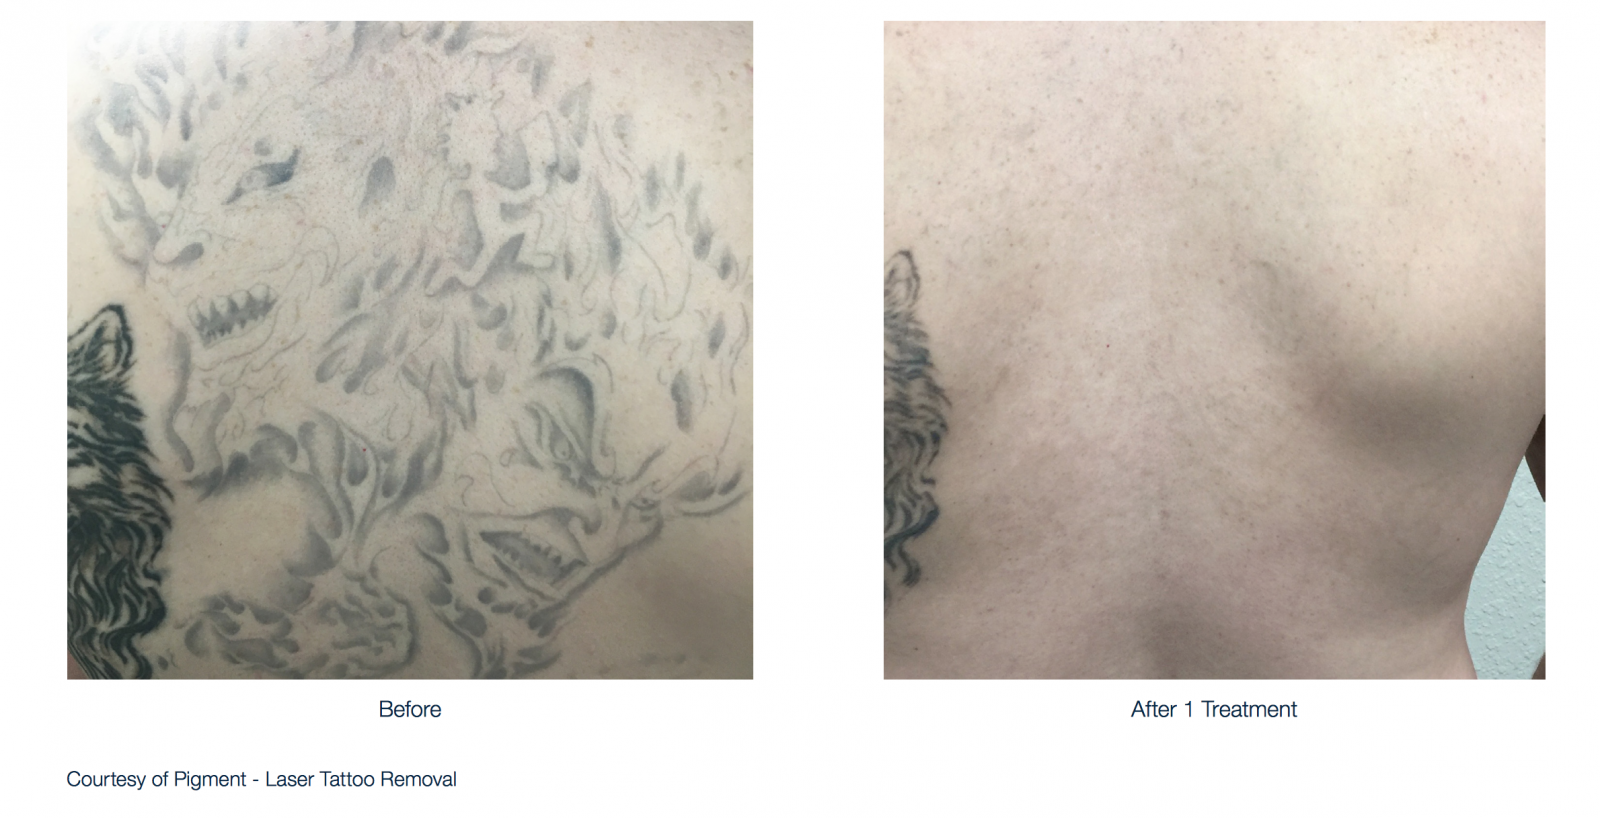 The Lumenis Piqo4 tattoo - Durango, CO Dermatologist